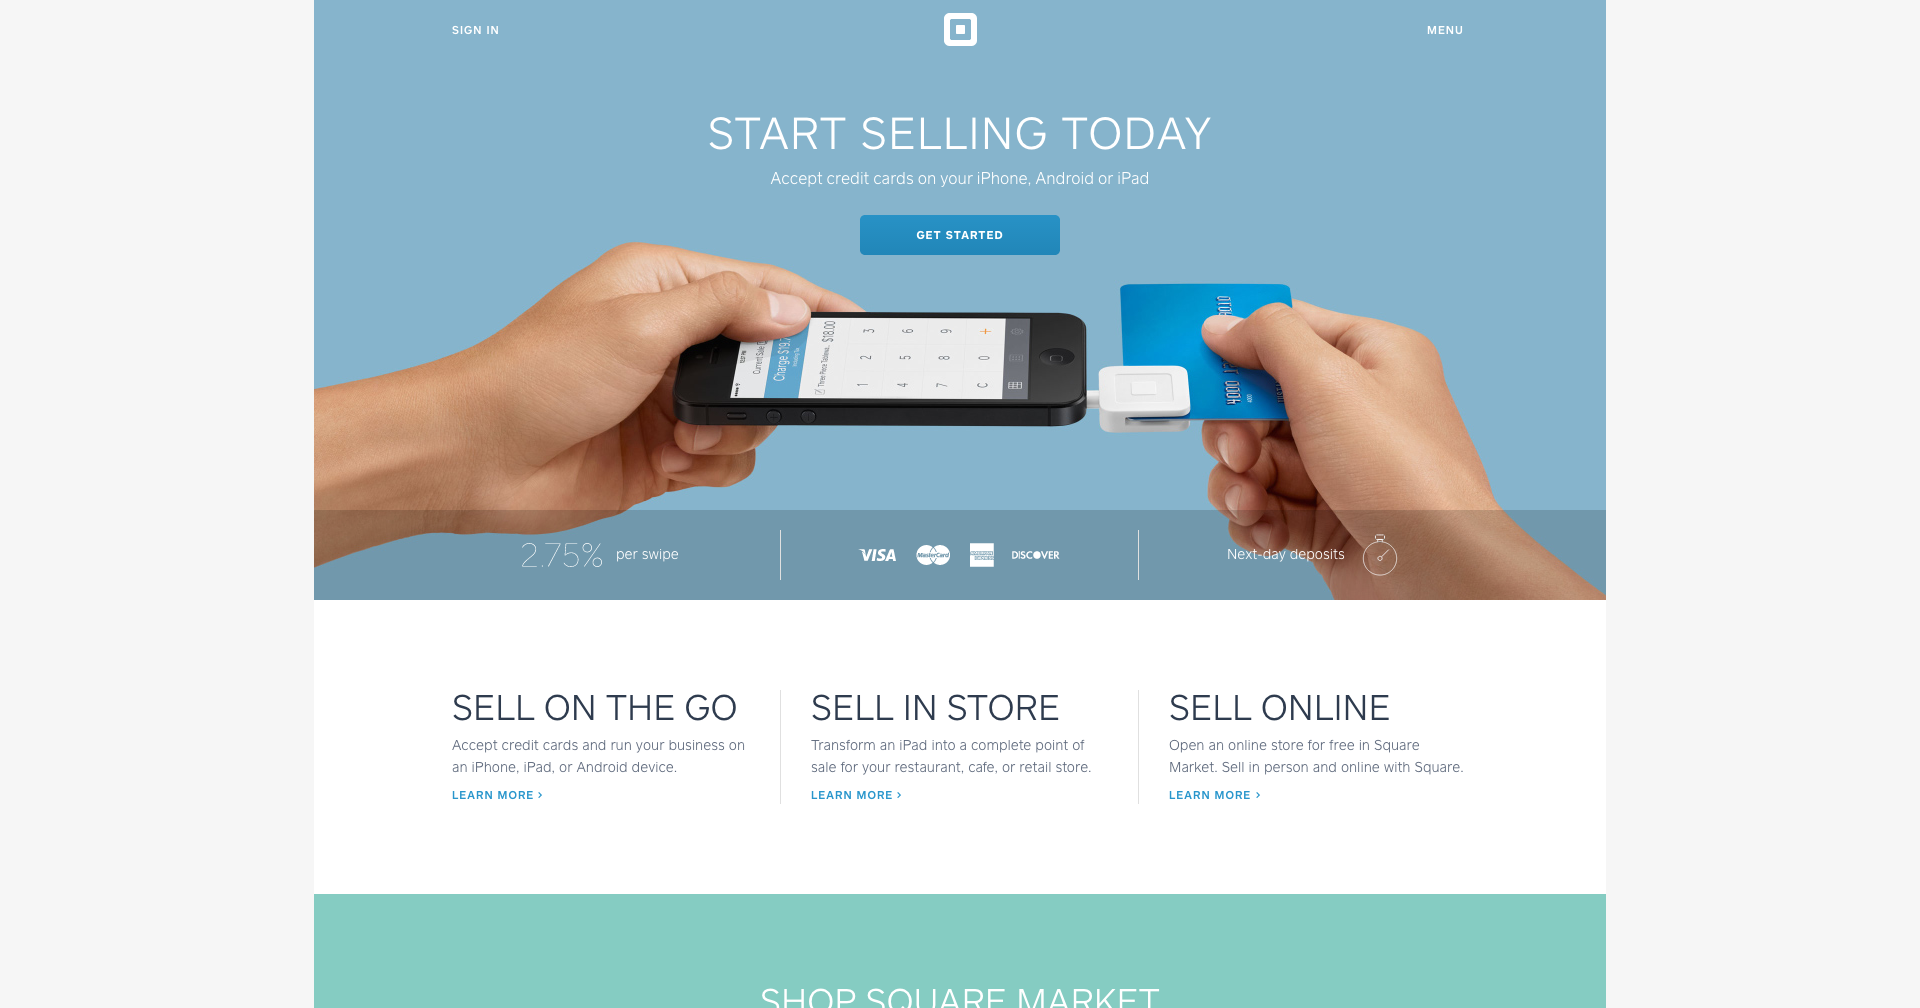 square accept credit card payments with your iphone android or